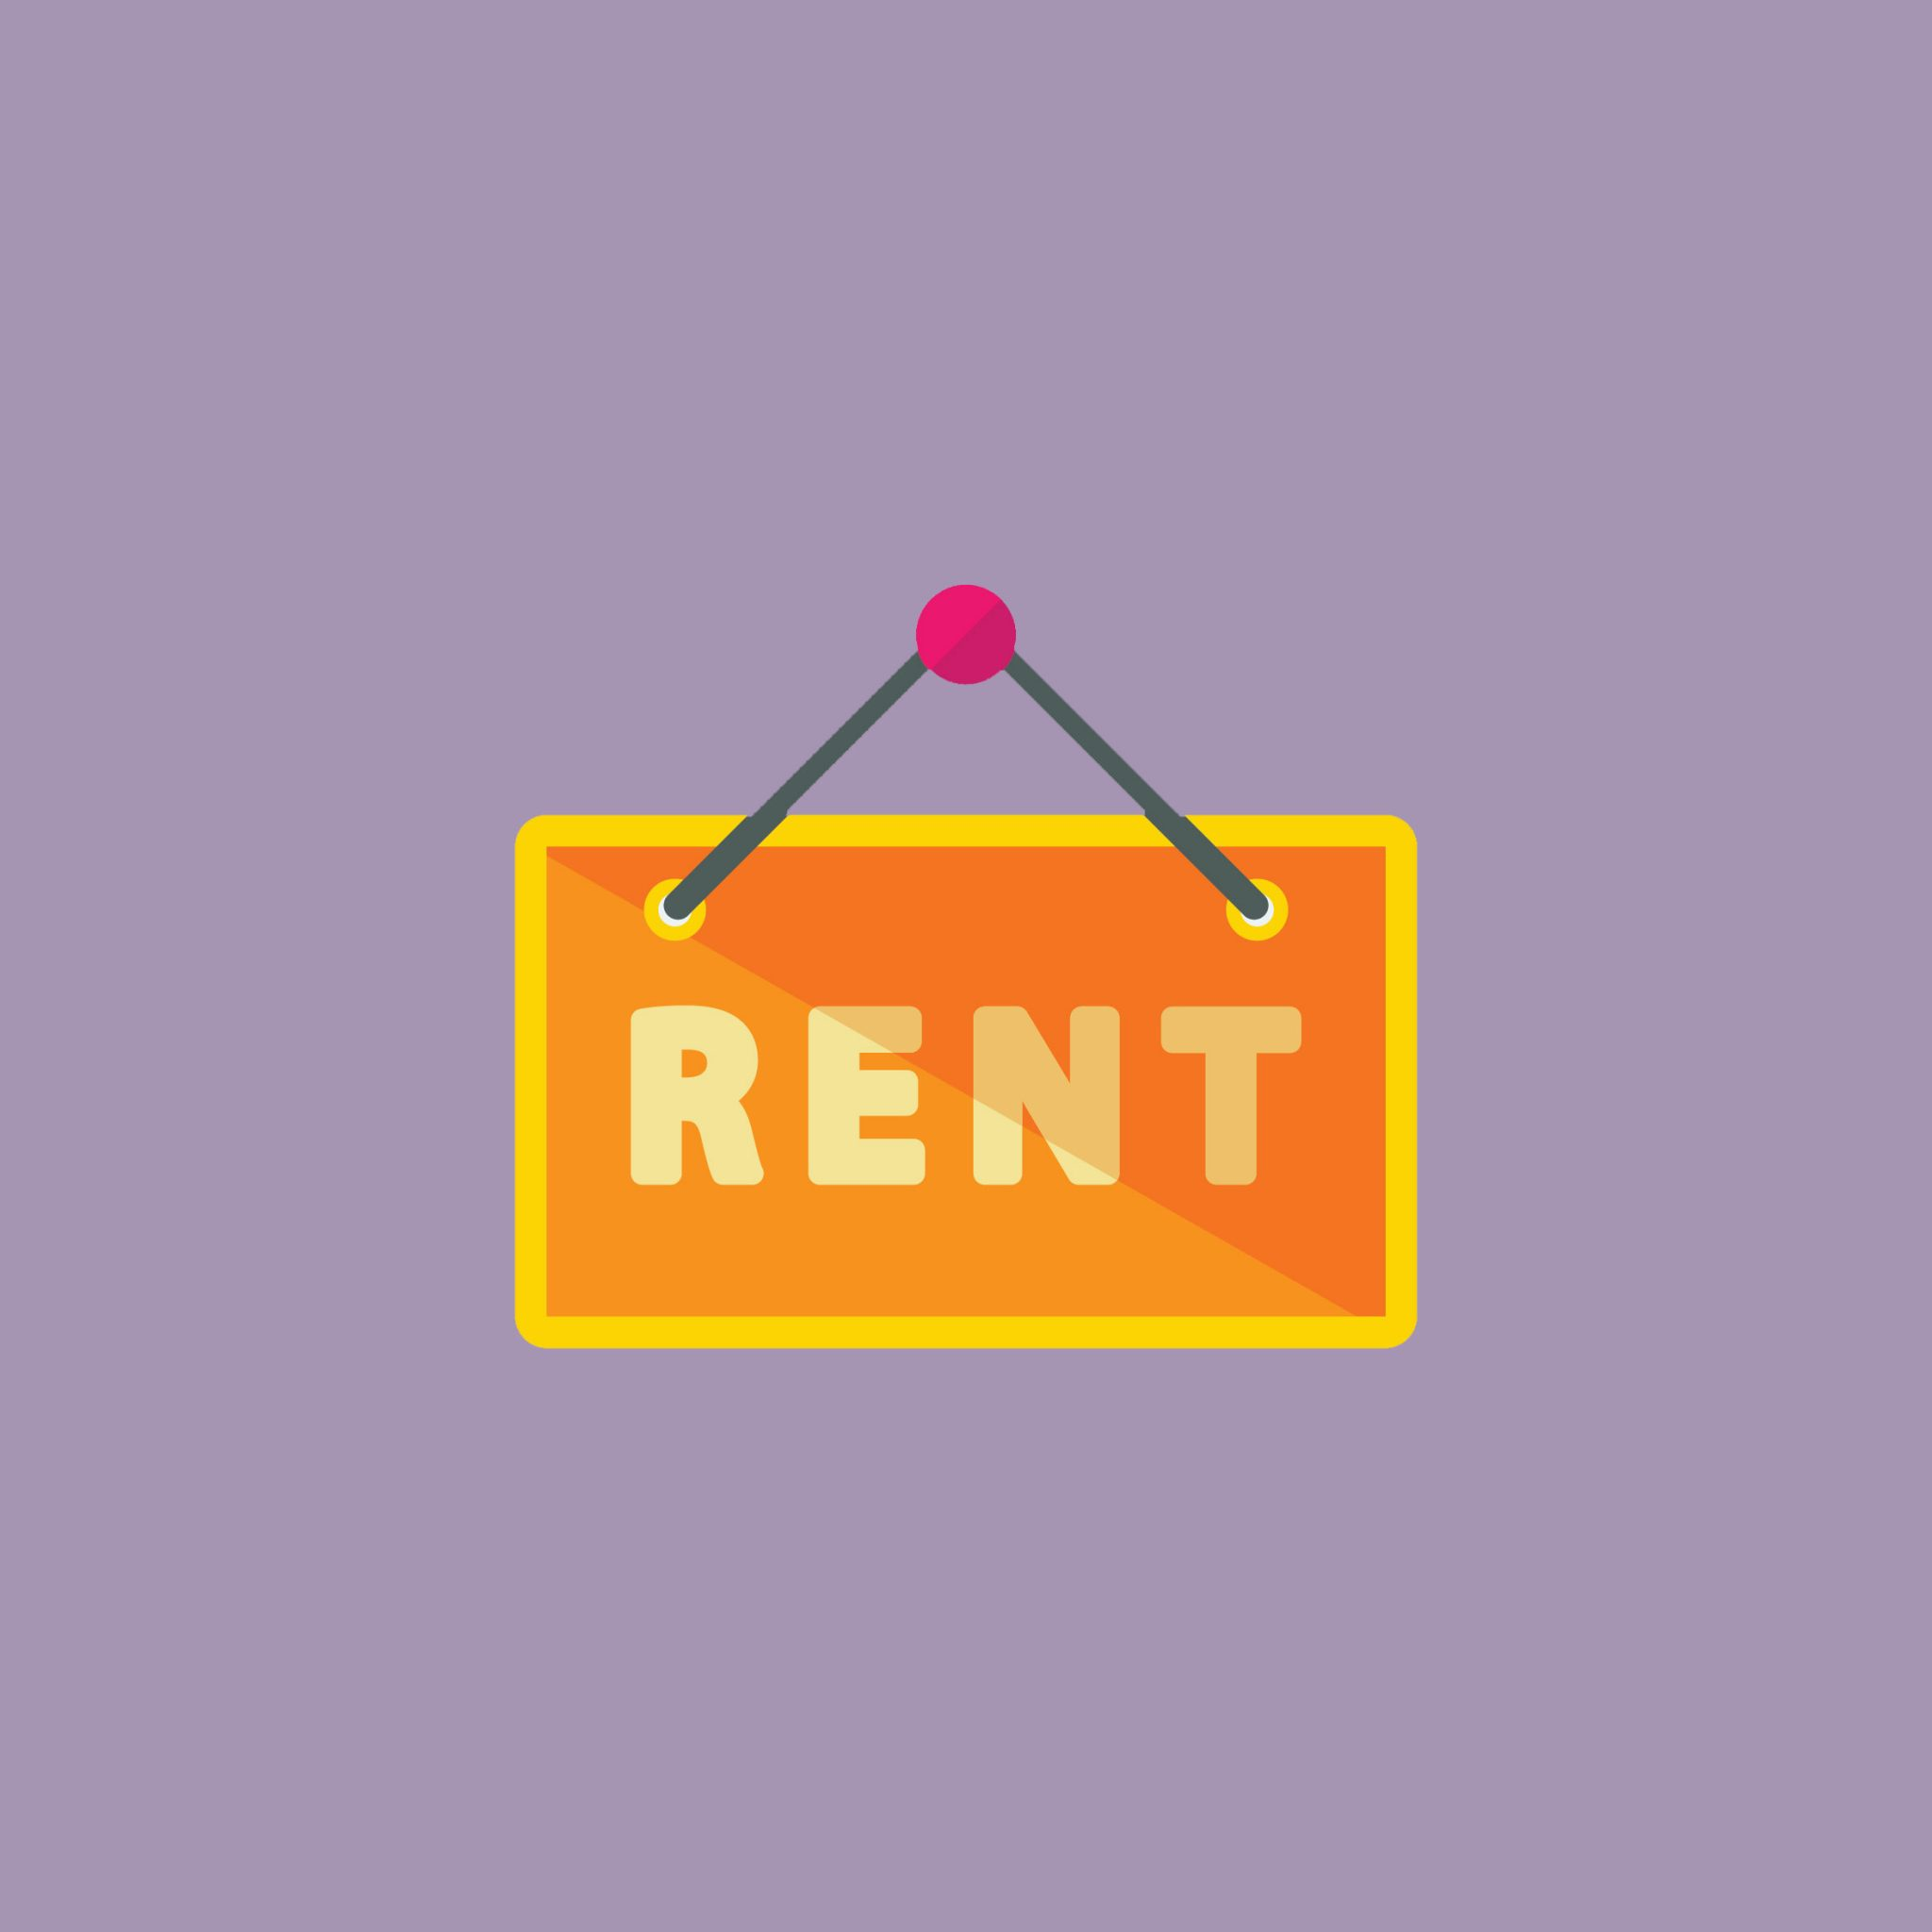 ICON-TENANT-AND-RENT-02-soft